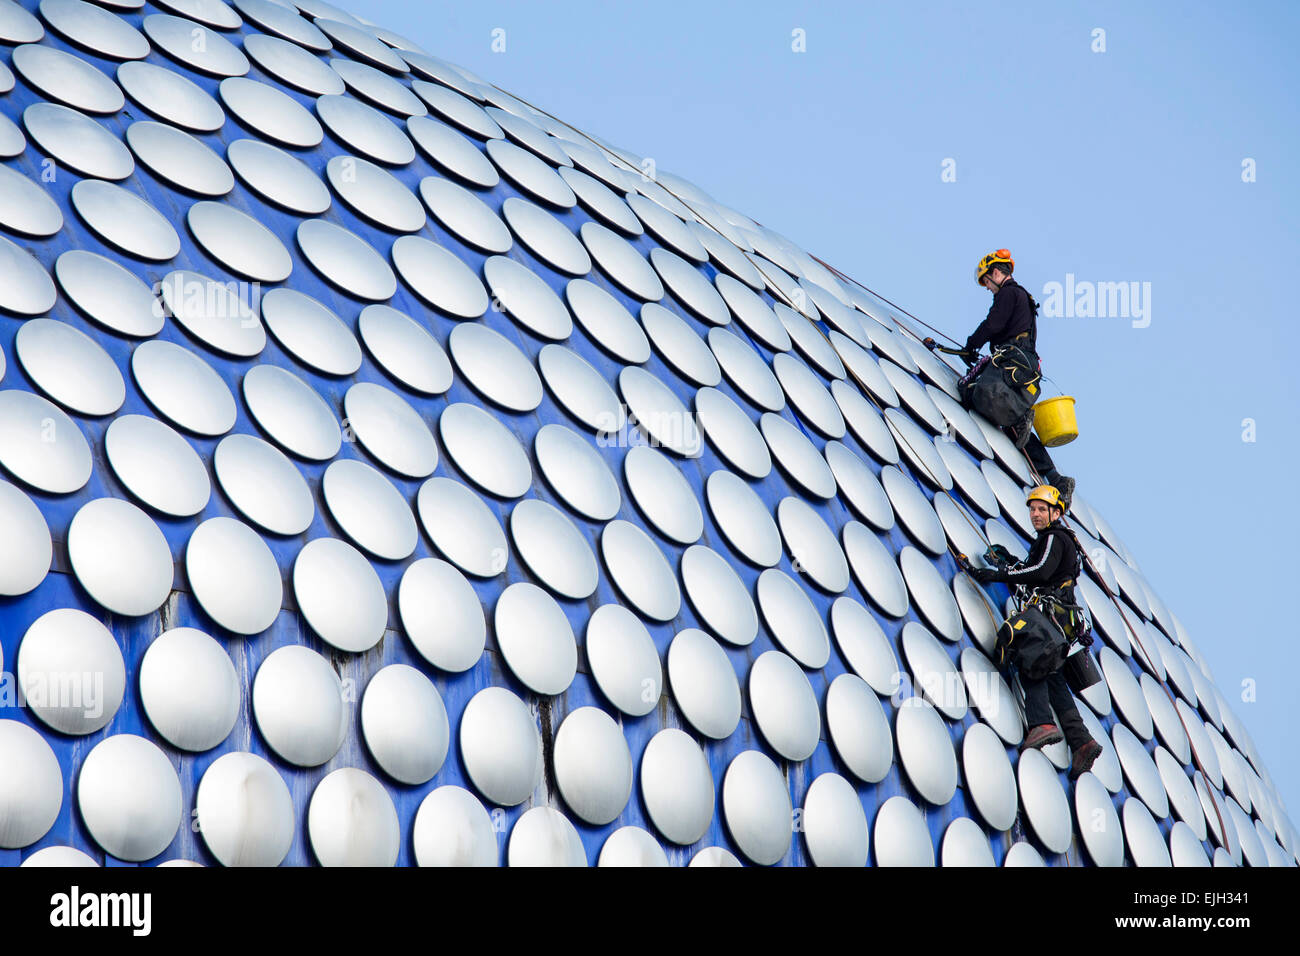 Workmen cleaning the decorative discs on the exterior of the Selfridges building in Birmingham - Stock Image